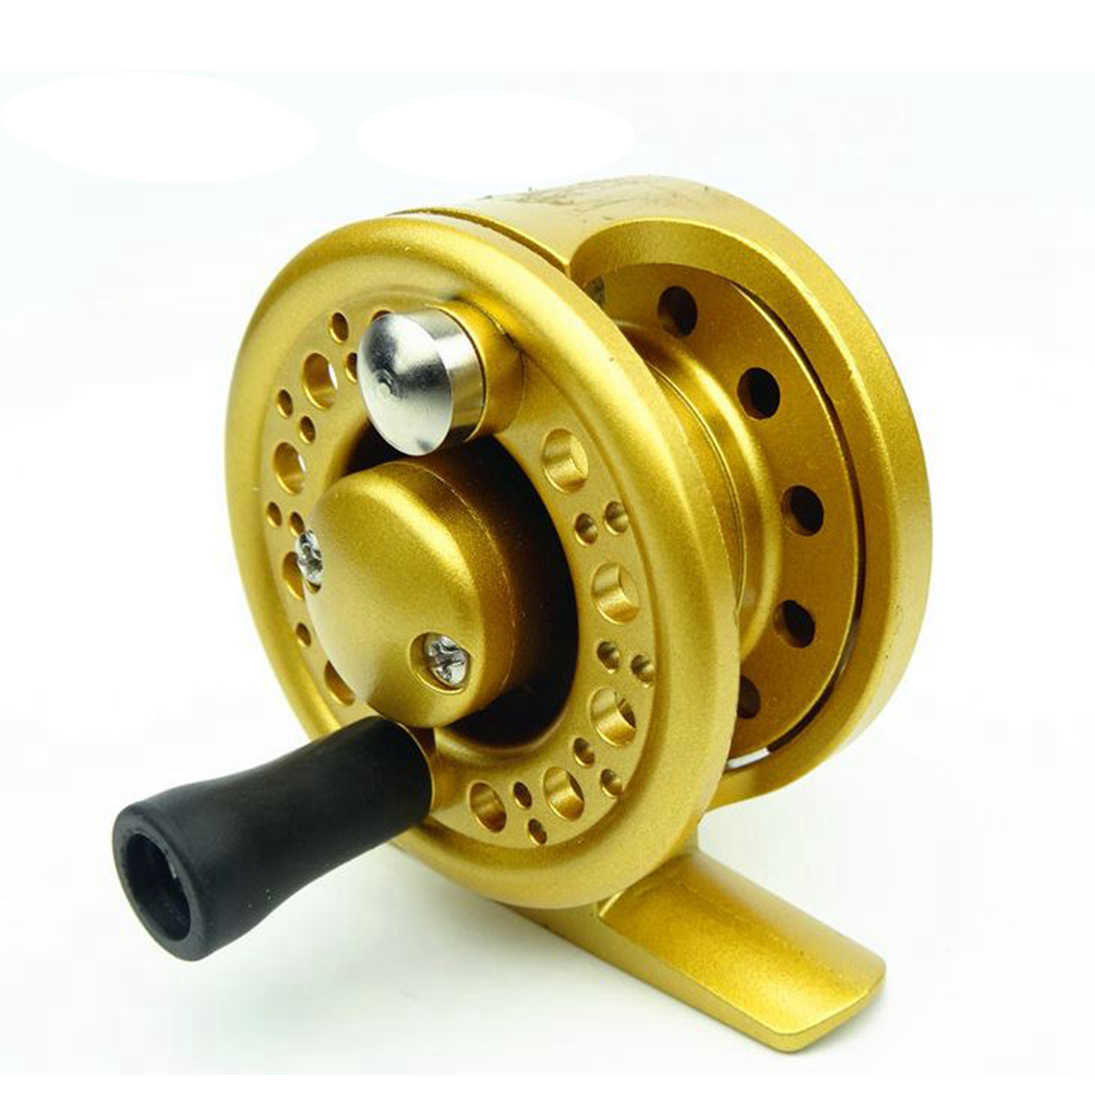 Usa fly ice saltwater fishing reel spinning reels tackle for Saltwater fly fishing reels